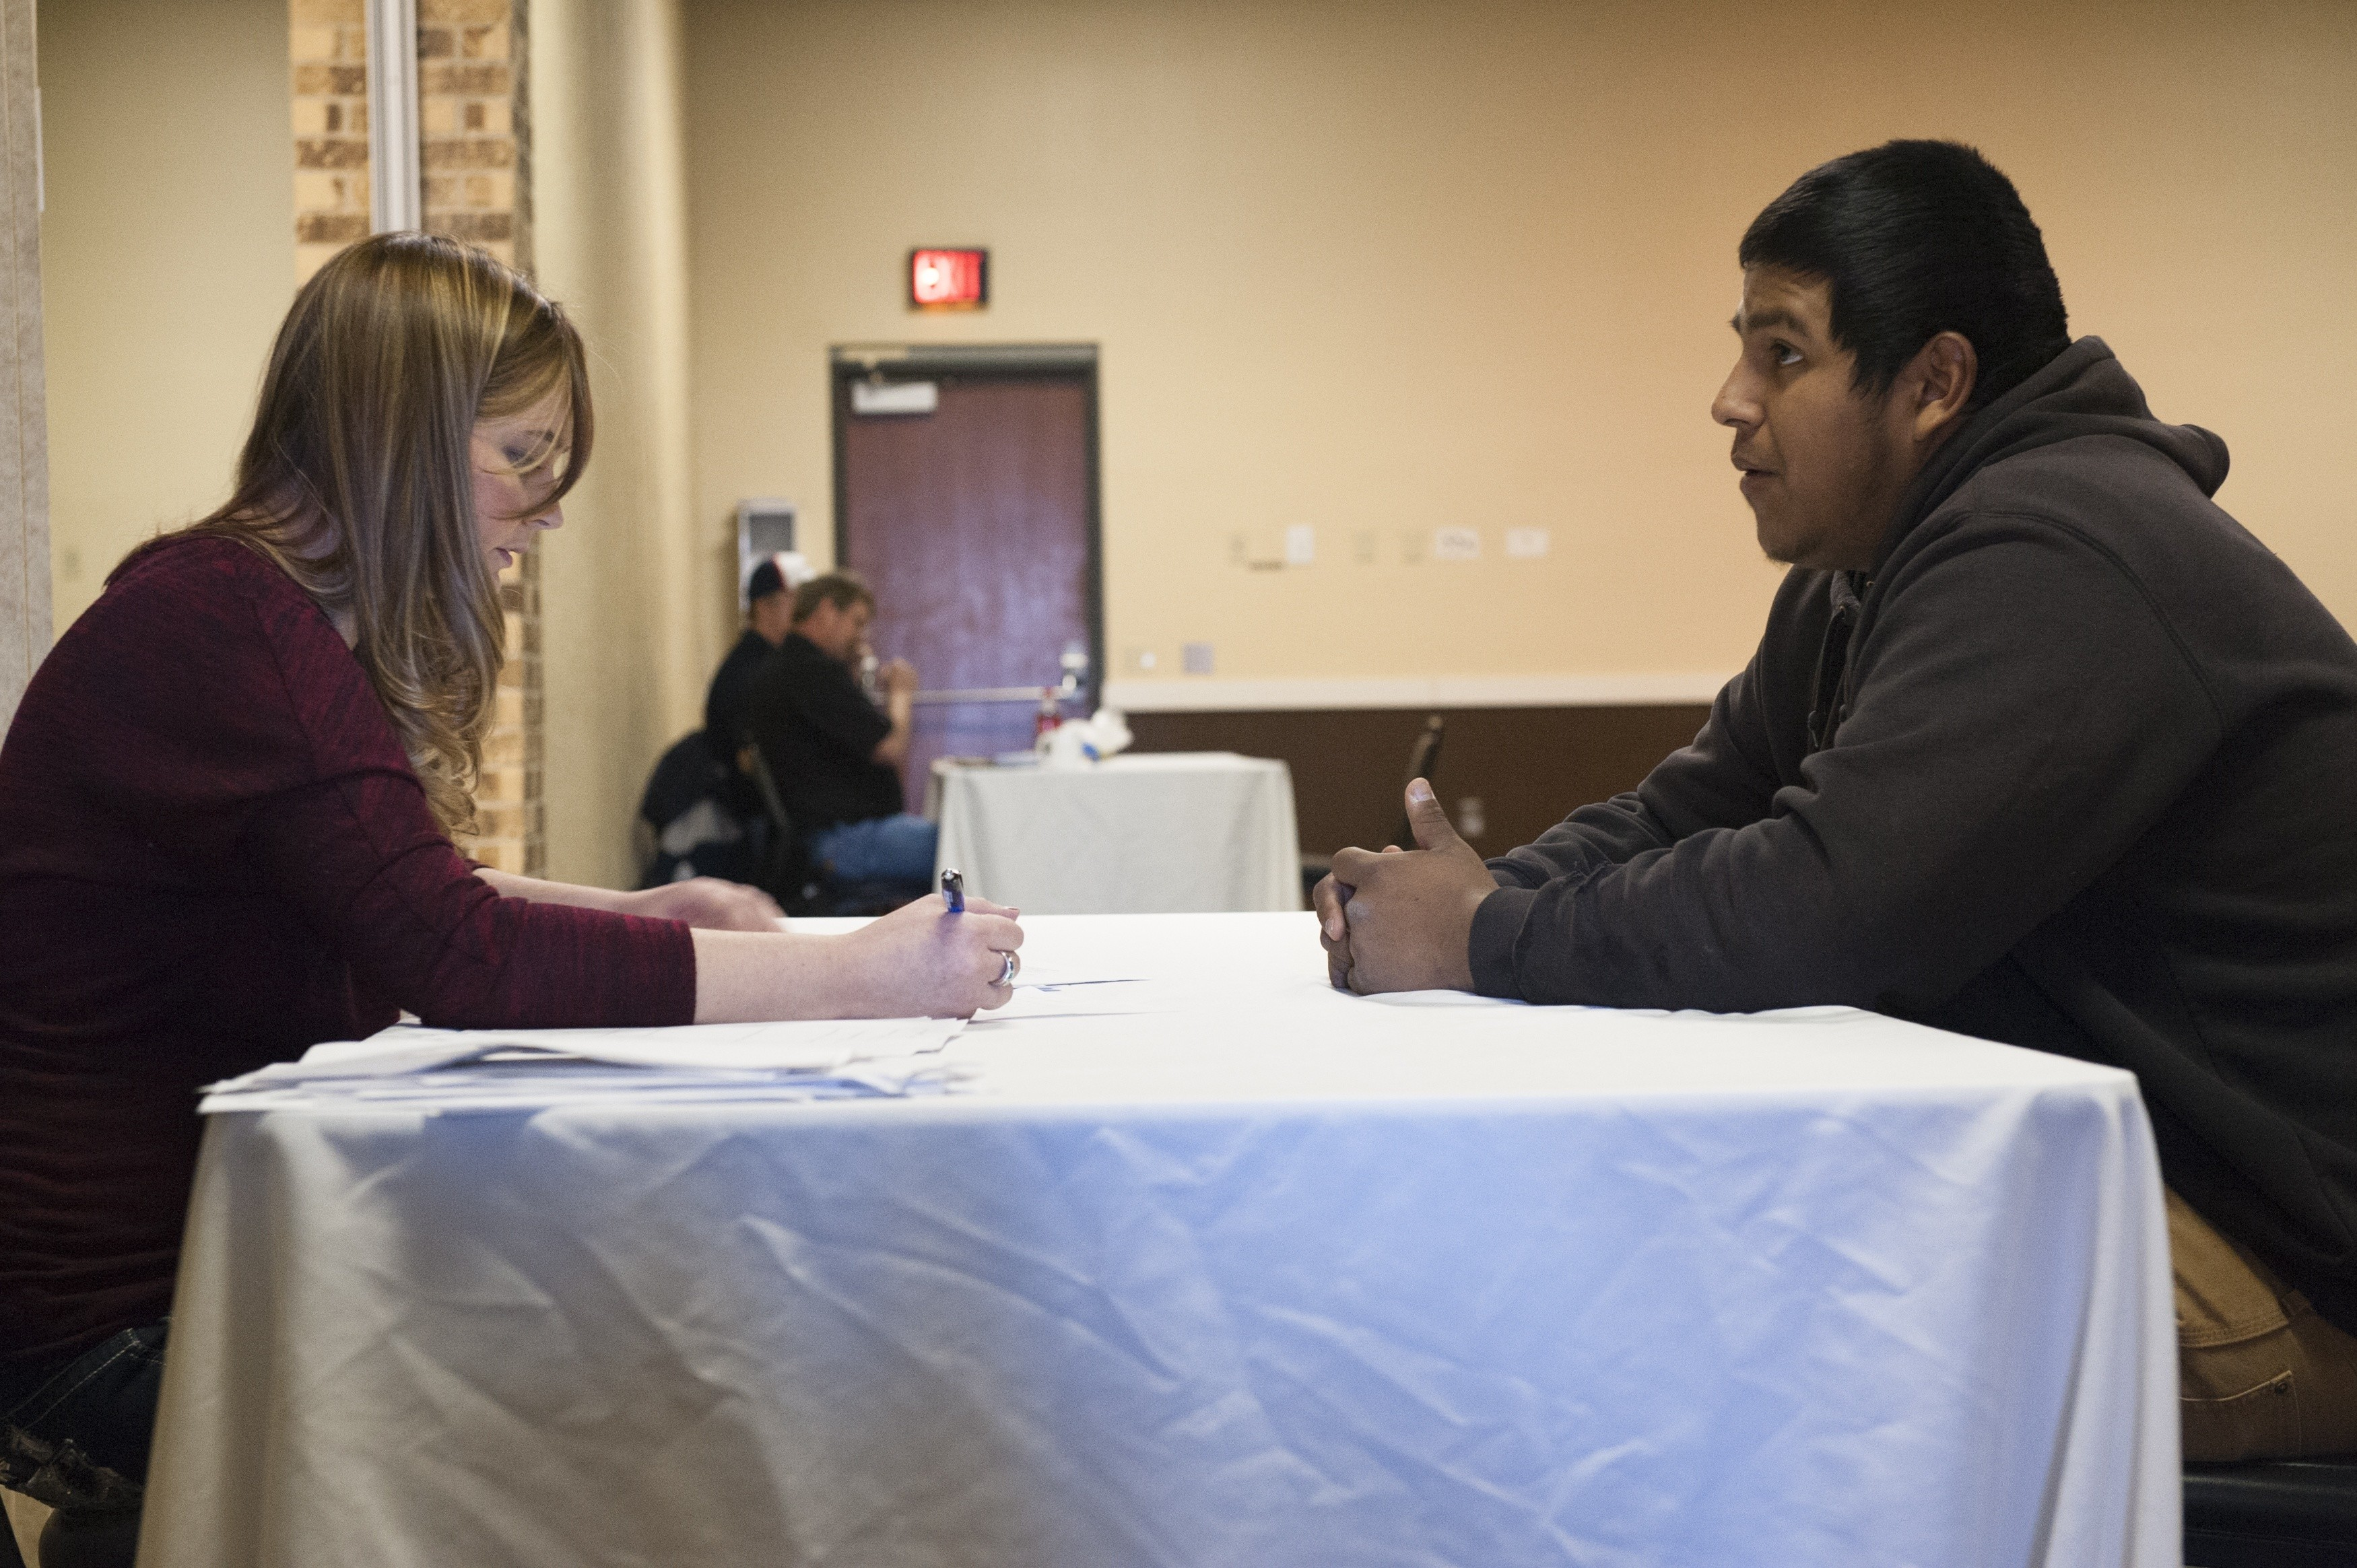 Bazileo Hernandez (R) talks to a recruiter at a hiring event hosted at a local hotel by the oilfield services company RockWater Energy Solutions in Williston, North Dakota January 22, 2015. After a week in Williston, Hernandez and his friends were still looking for steady work. Like so many before them, Terra Green, Jeff Williamson and Bazileo Hernandez came to North Dakota's oil country seeking a better life. They just came too late. Itinerant, unskilled workers could as recently as last spring show up in the No. 2 U.S. oil producing state and vie for salaries north of $100,000 per year with guaranteed housing. The steep drop in oil prices has changed that. After trying unsuccessfully for over a month to find work, the friends decided to leave Williston. REUTERS/Andrew Cullen   (UNITED STATES - Tags: BUSINESS COMMODITIES EMPLOYMENT SOCIETY) PICTURE 15 OF 28 FOR WIDER IMAGE STORY 'IN PURSUIT OF THE AMERICAN DREAM'SEARCH 'CULLEN DREAM' FOR ALL IMAGES - RTR4U0XA